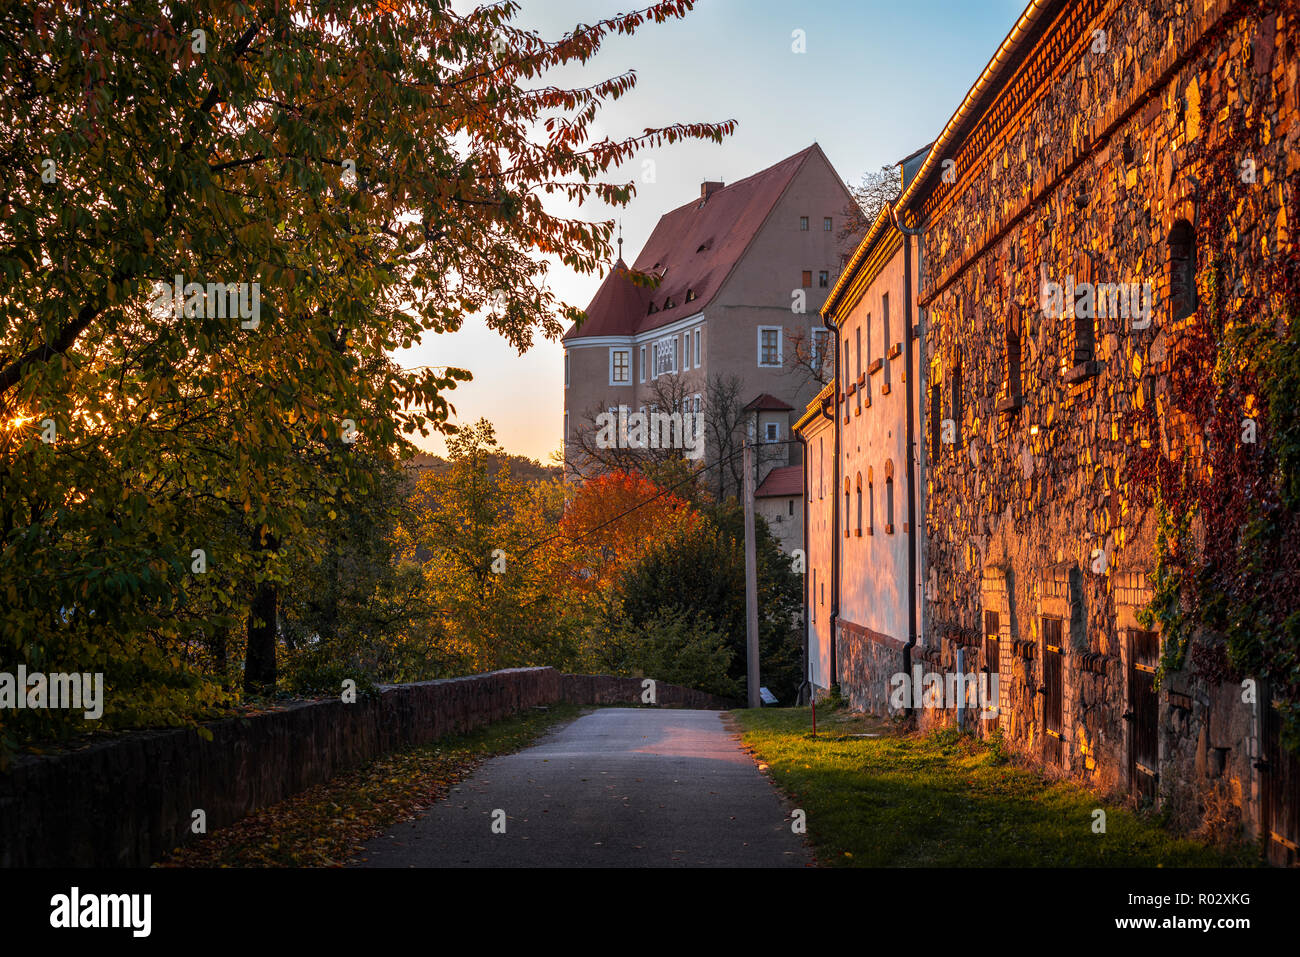 Gnandstein Castle in the Leipzig district, Kohren-Sahlis | Burg Gnandstein im Leipziger Land, Kohren-Sahlis, Germany - Stock Image